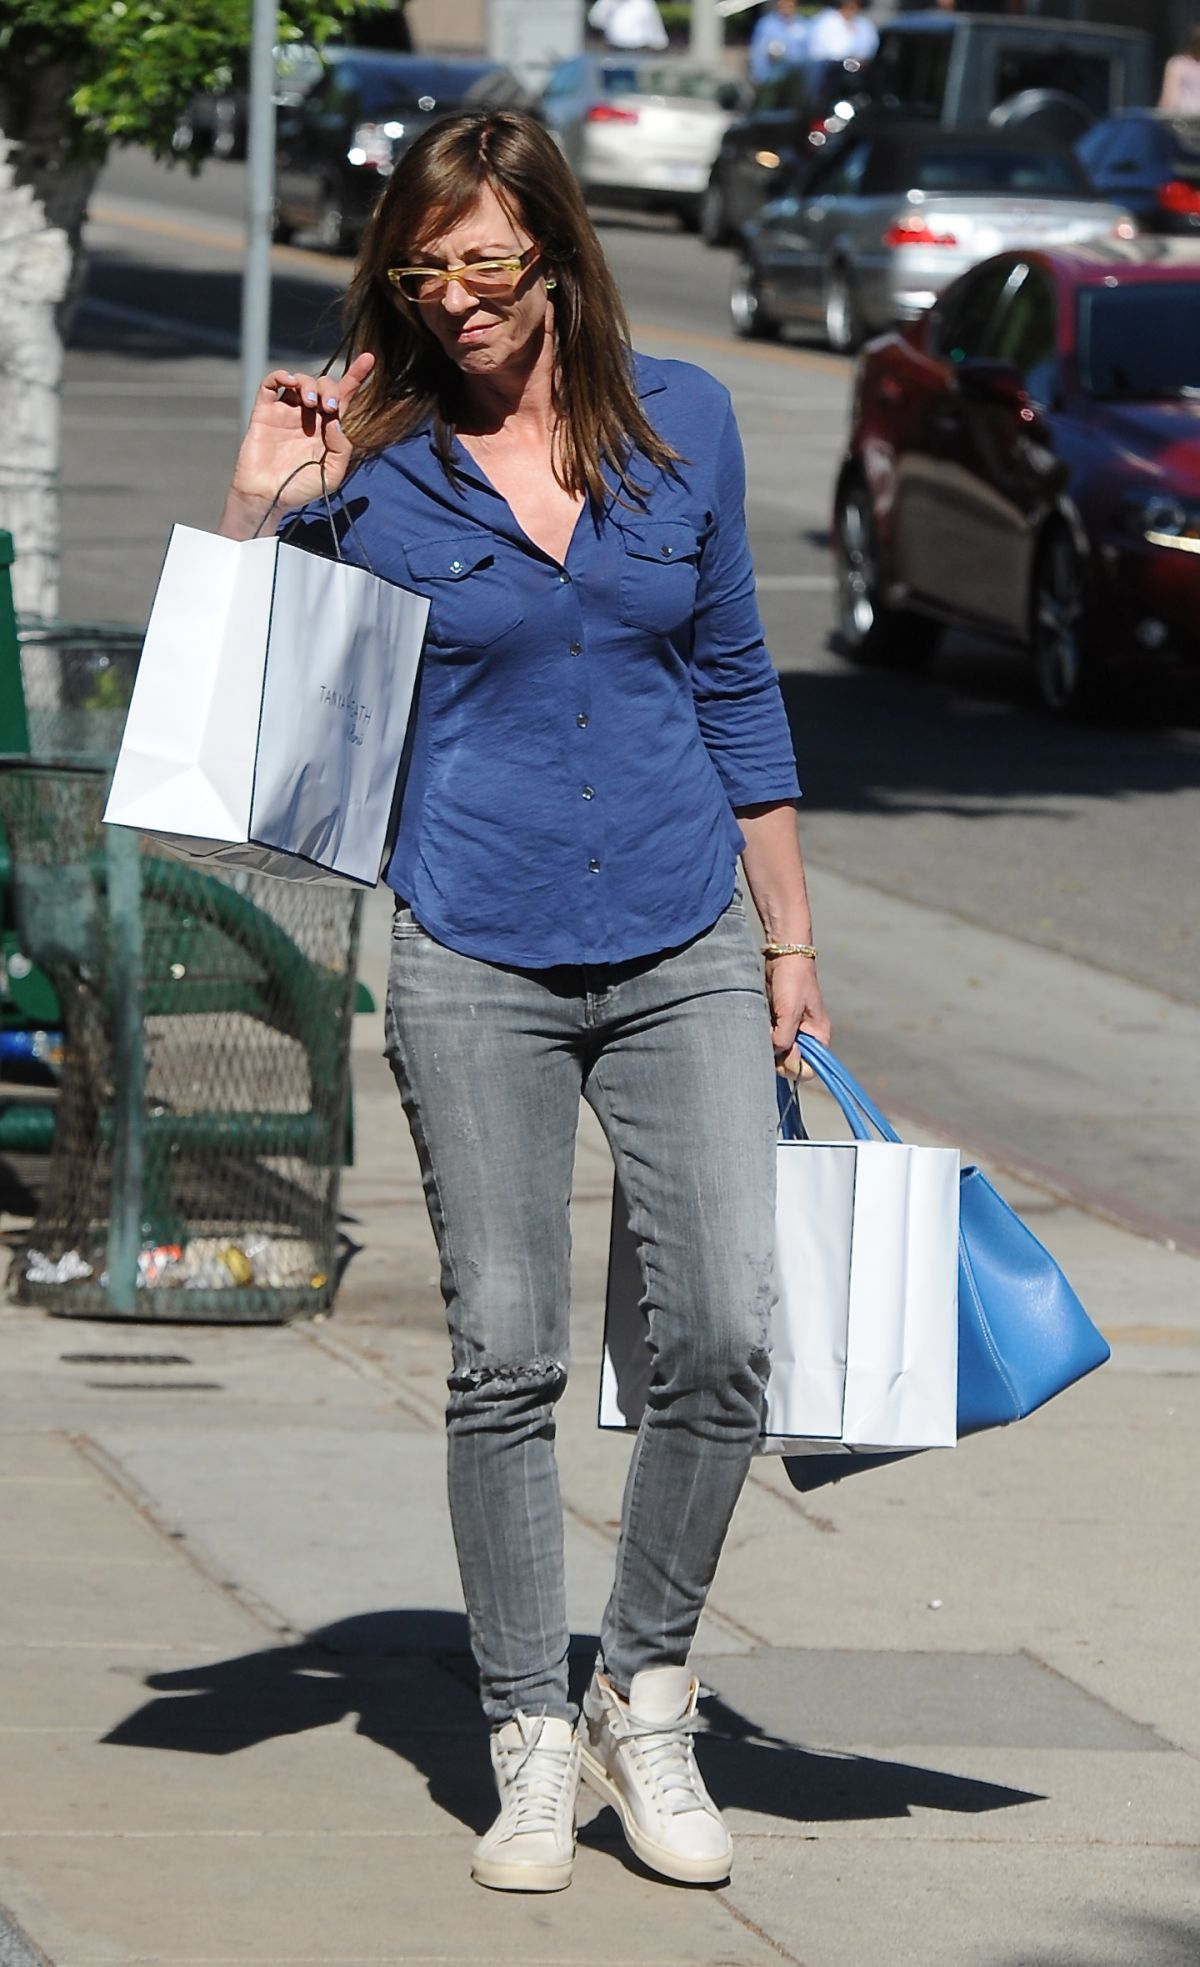 ALLISON JANNEY Out Shopping on Robertson Blvd in Los Angeles 02/11/2016